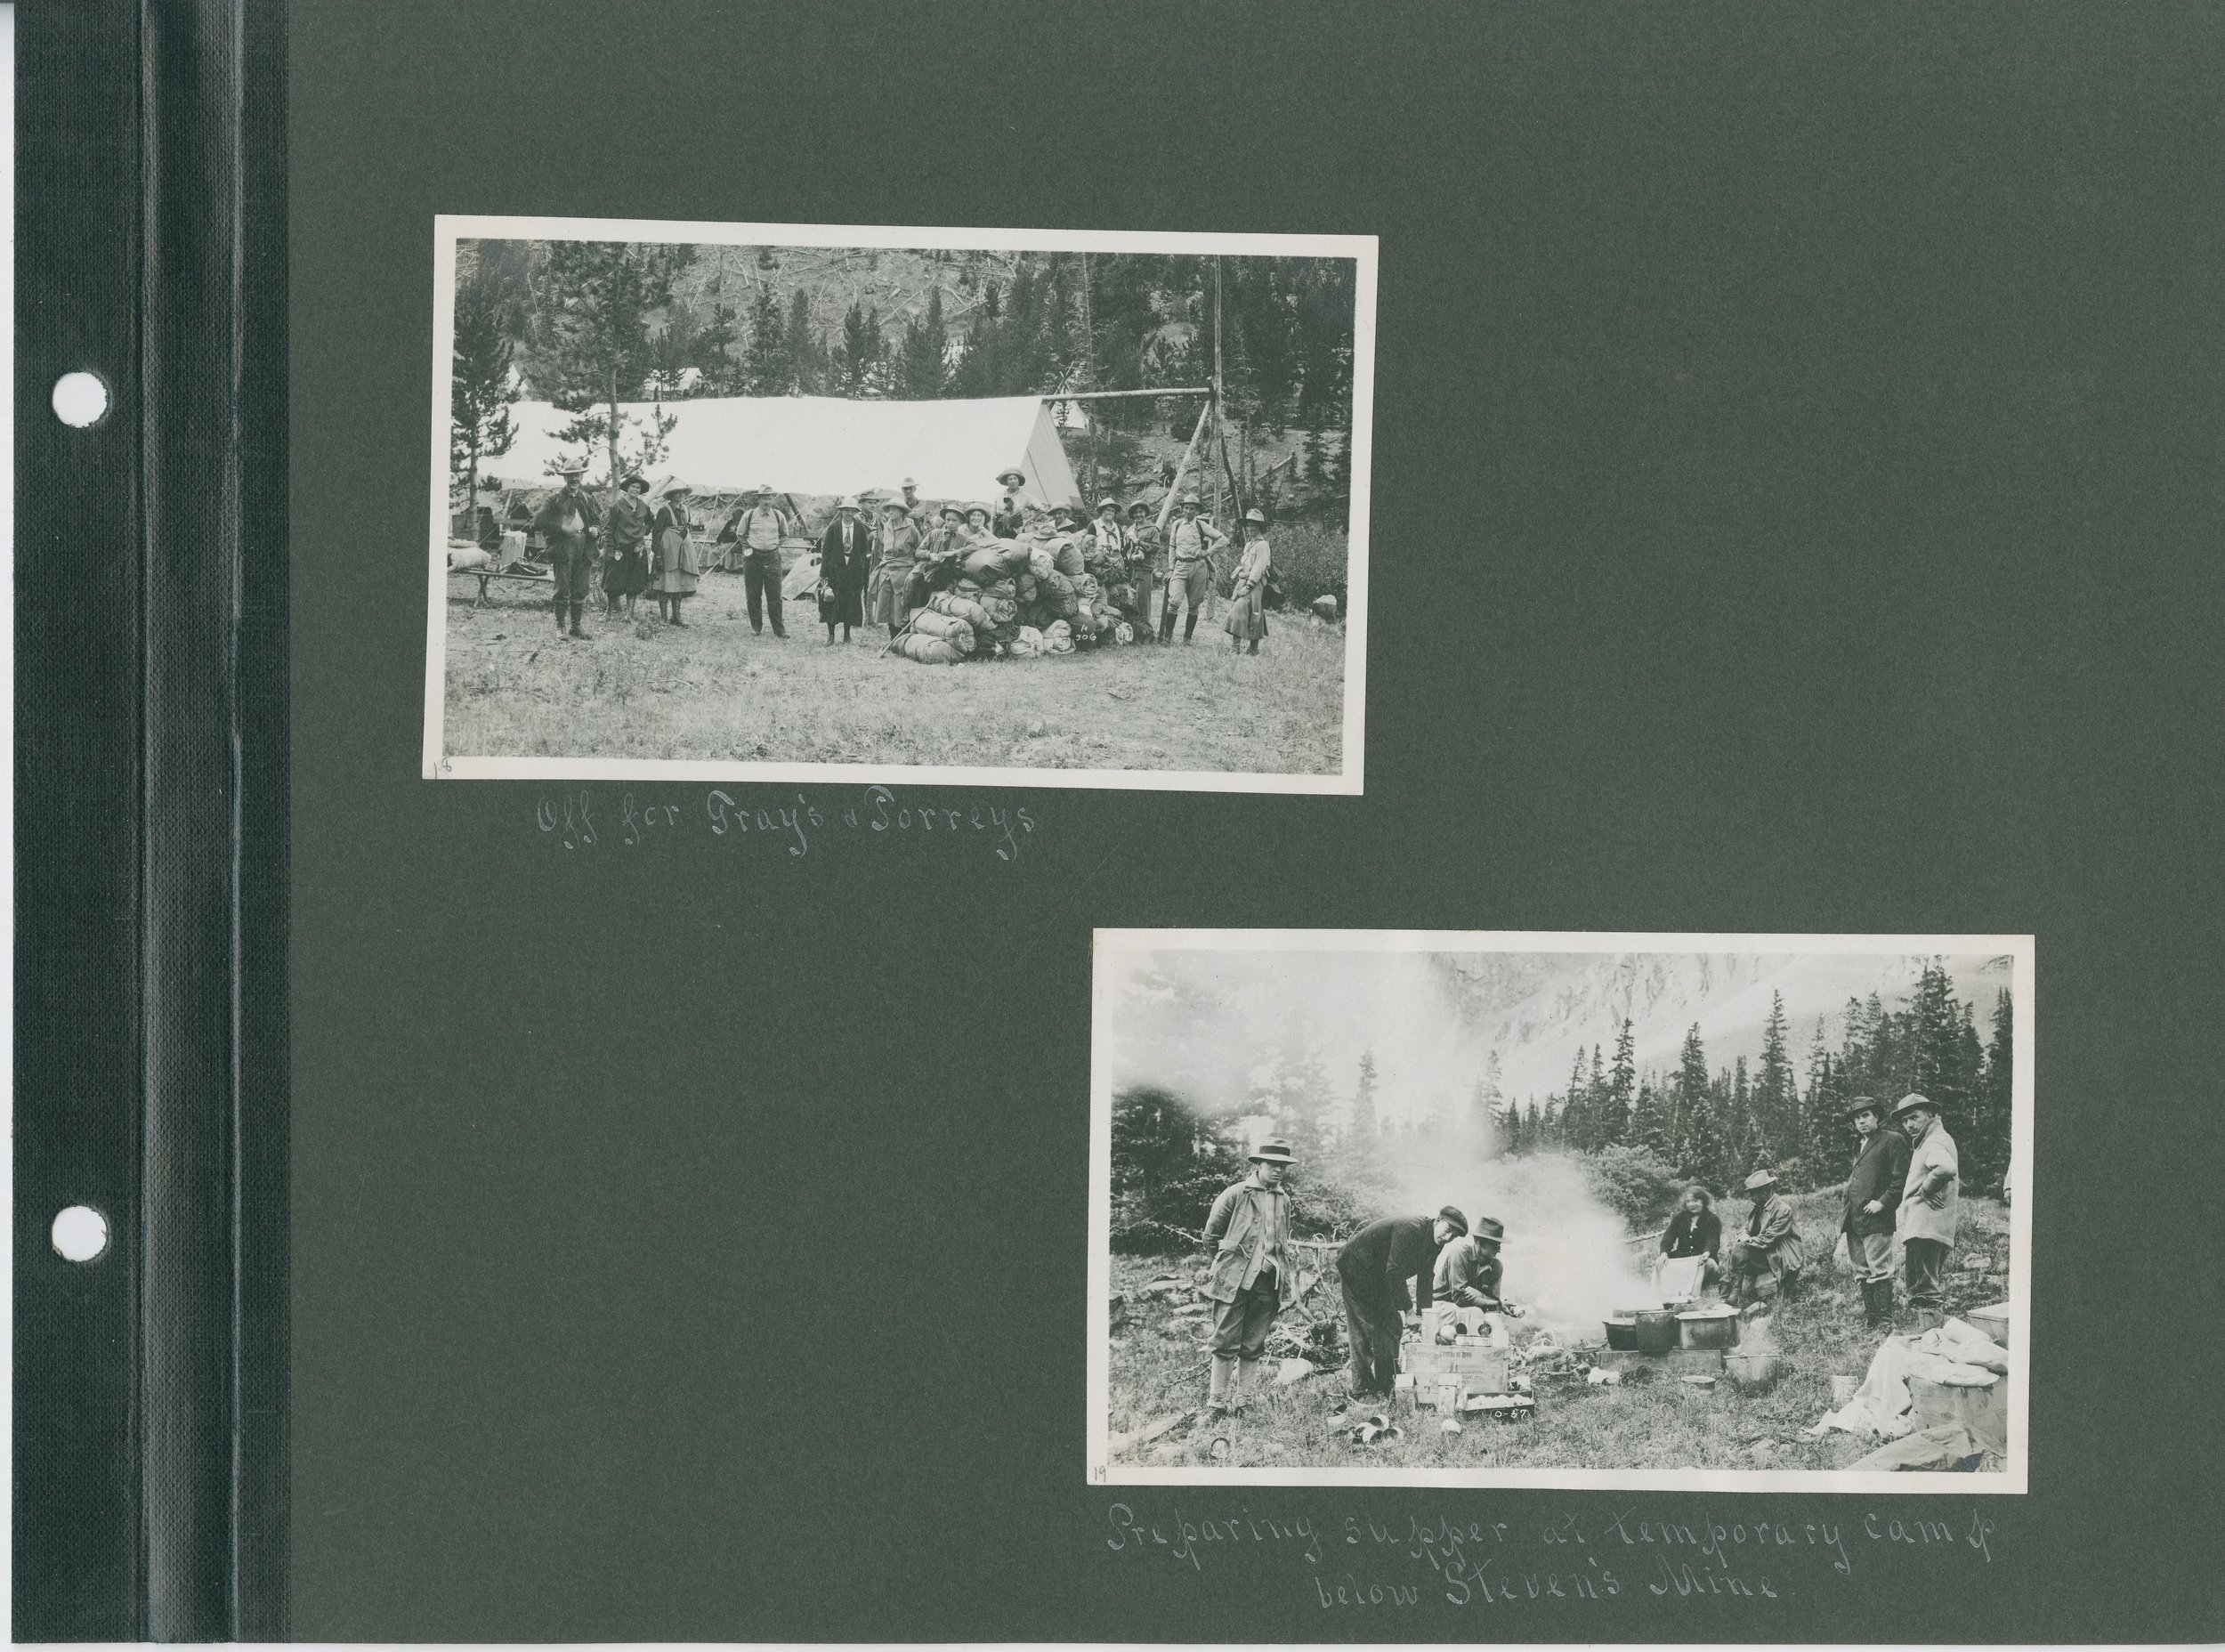 Top: Off to Gray's & Torreys, Bottom: Preparing supper at temporary camp below Steven's Mine